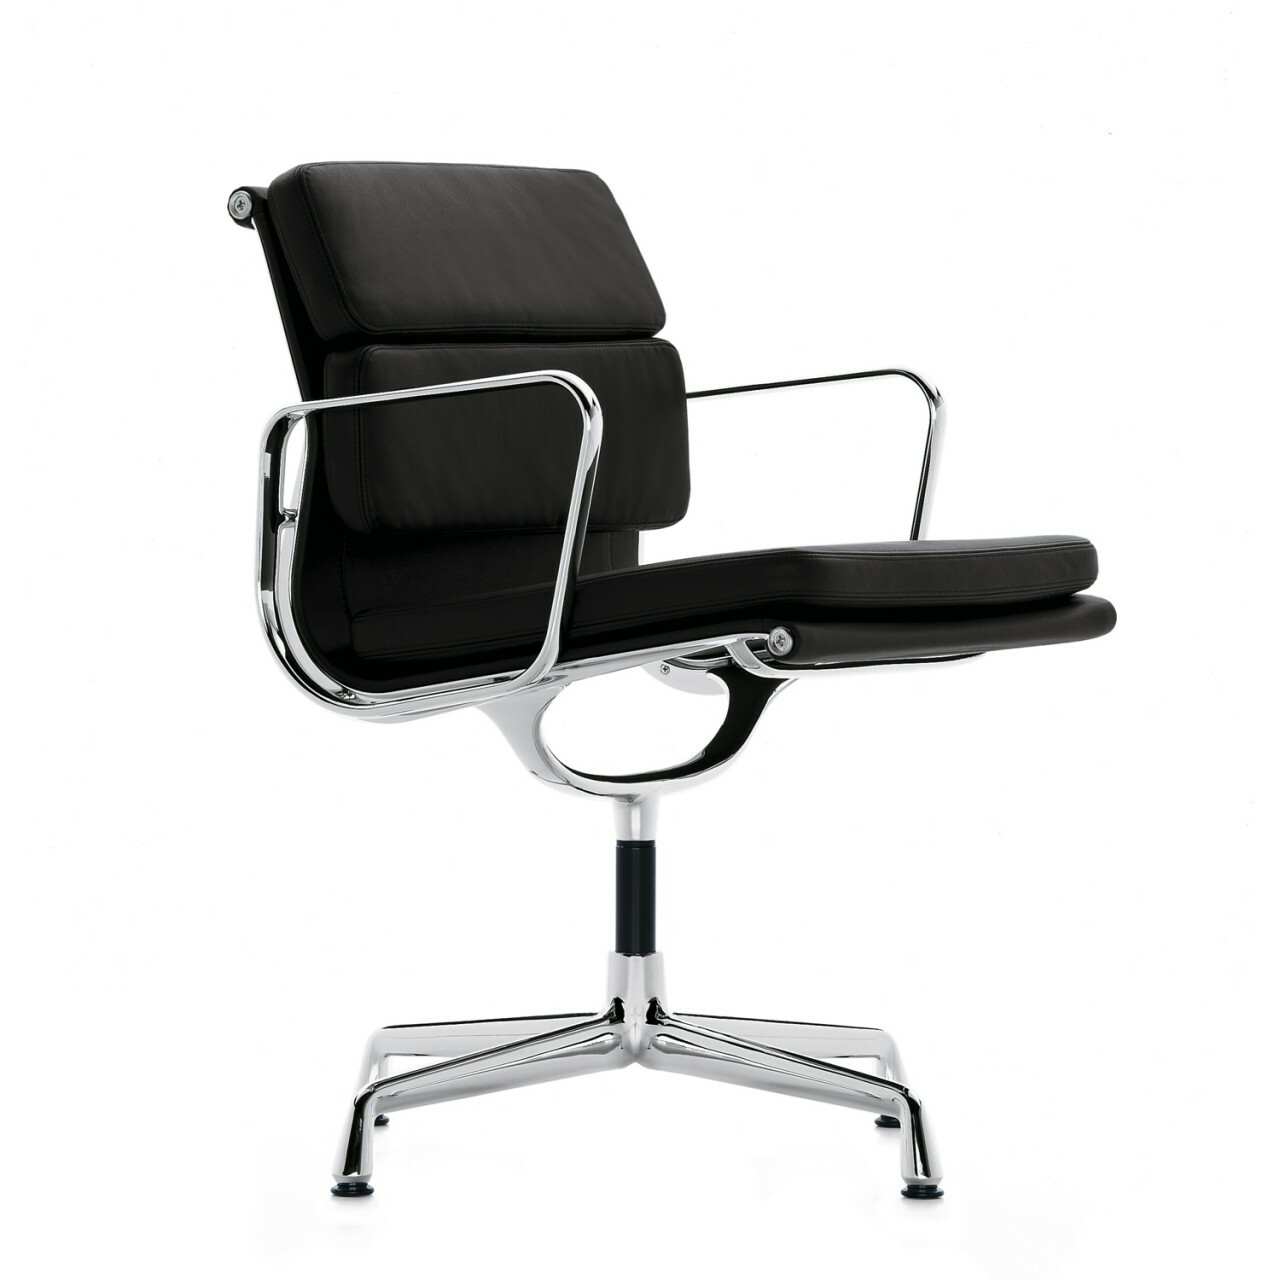 vitra eames soft pad group chair. Black Bedroom Furniture Sets. Home Design Ideas